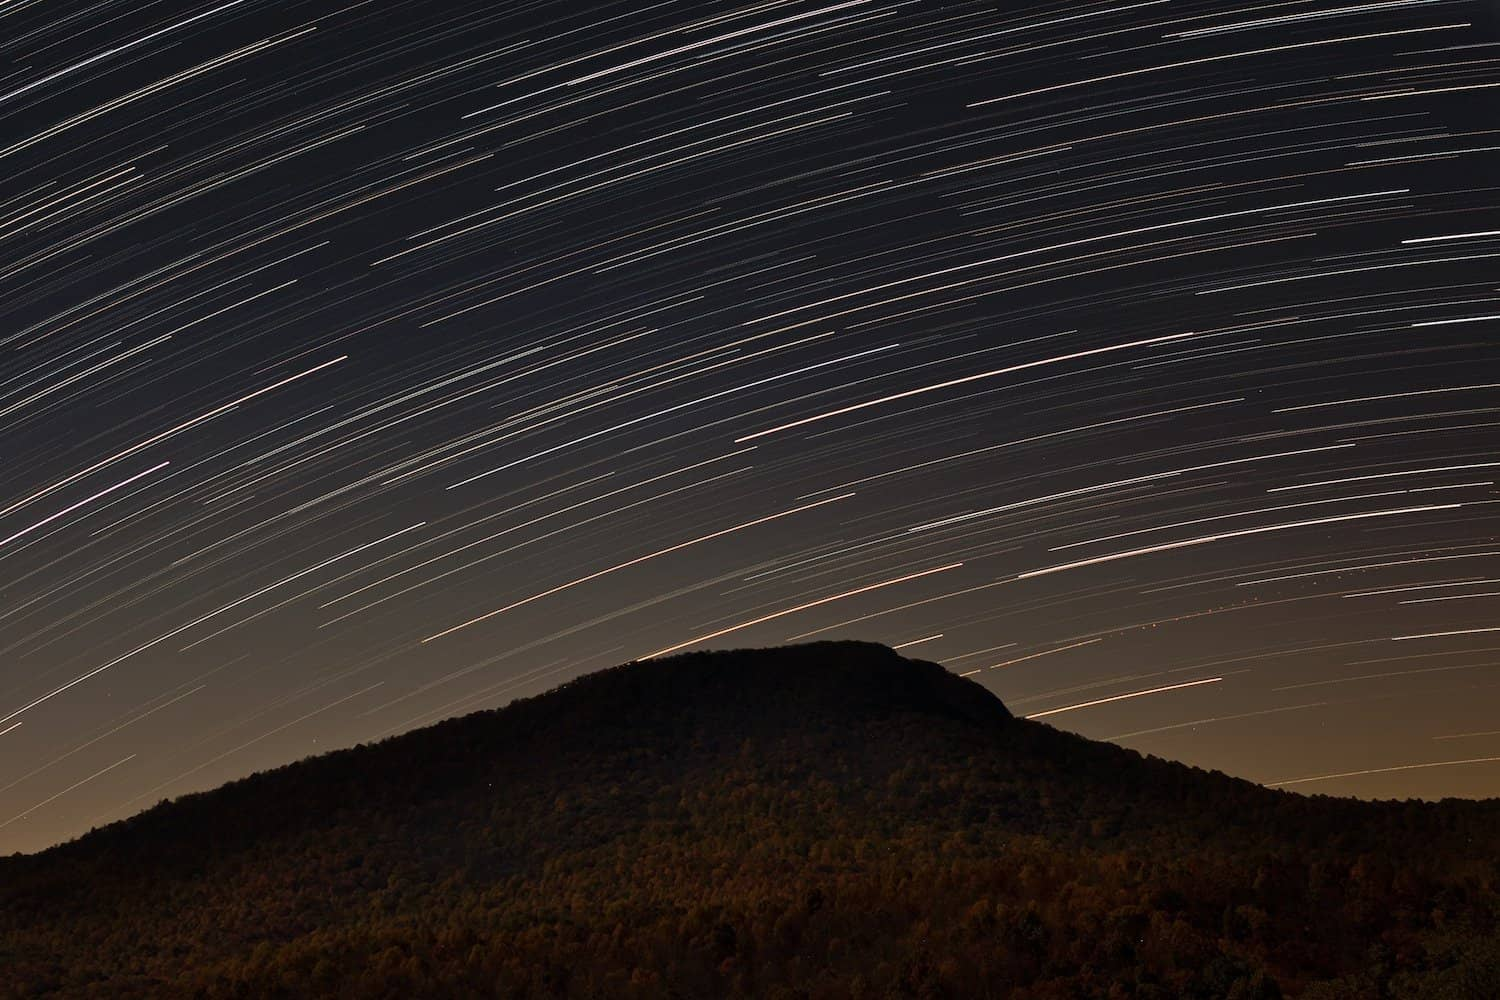 Stargazing in the Blue Ridge Mountains - tackyshack via Flickr